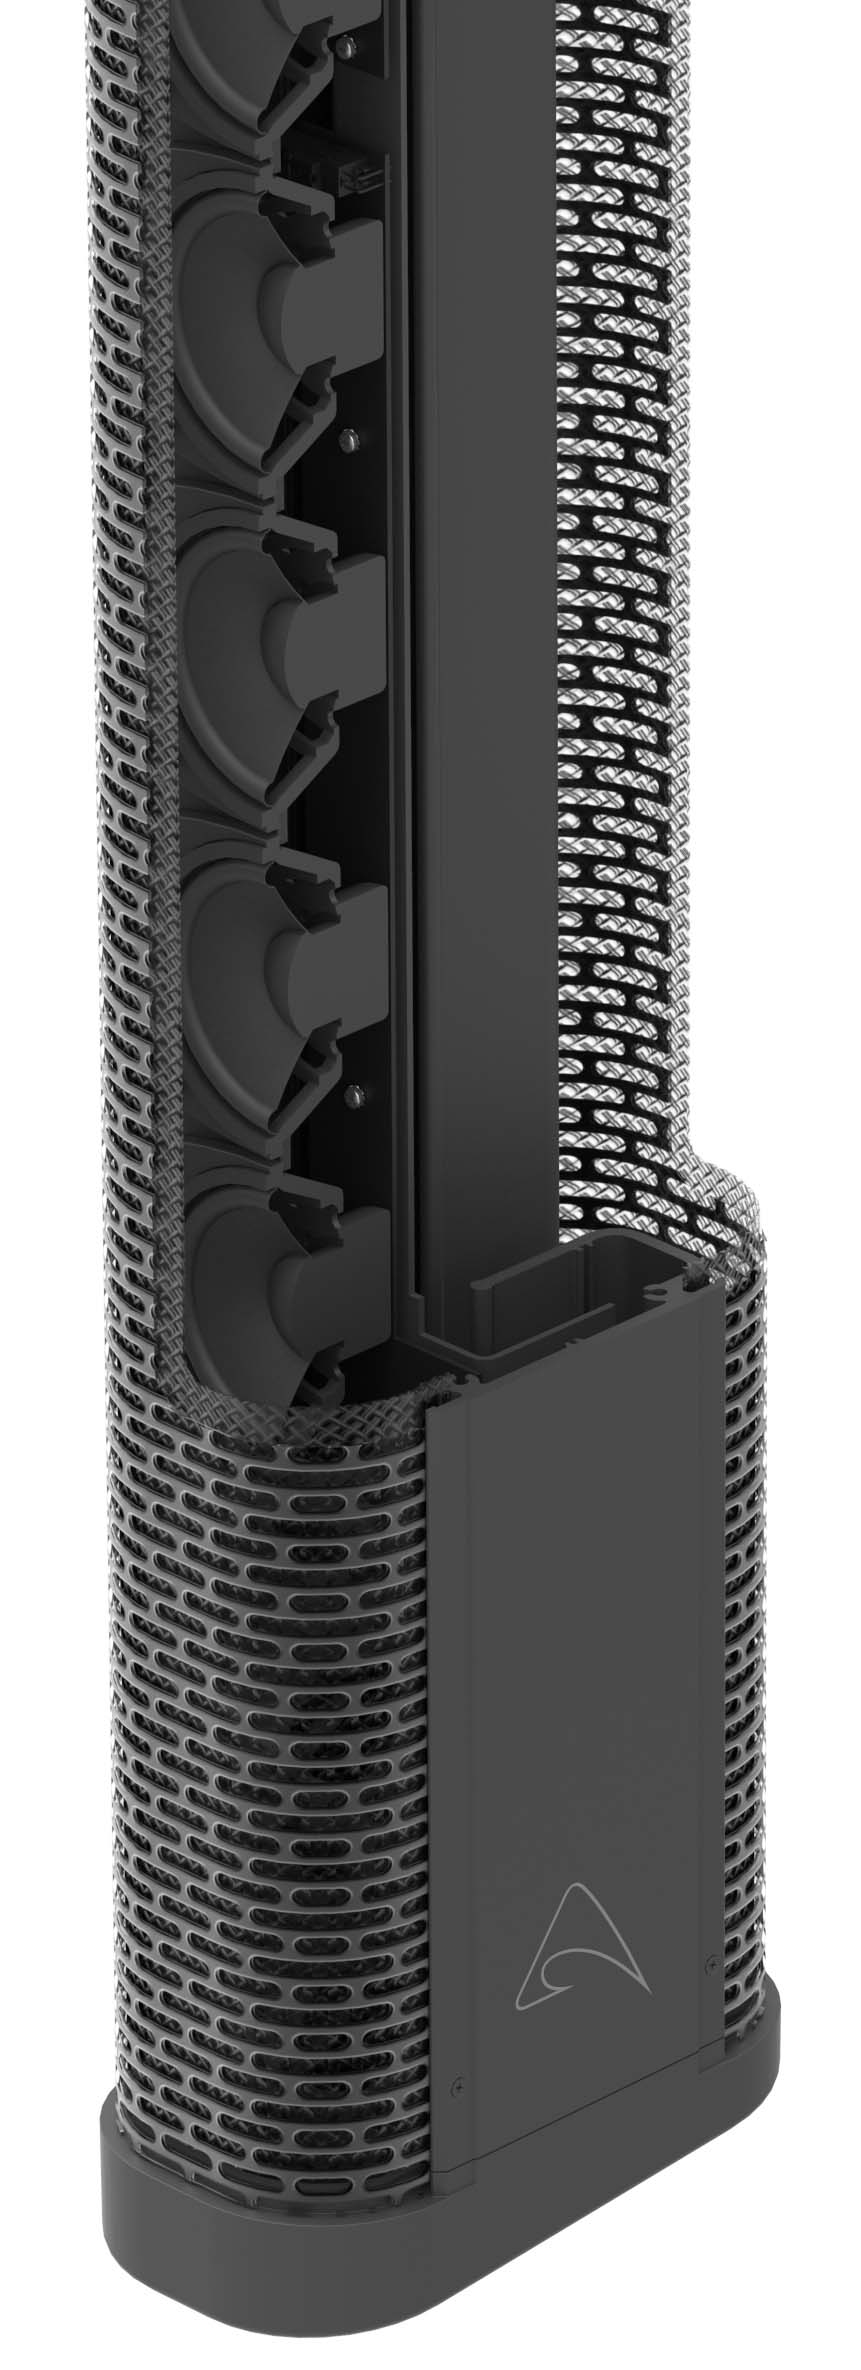 AXIOM. High Power, Passive, Portable Line Array Element 12 x 3.5 inch